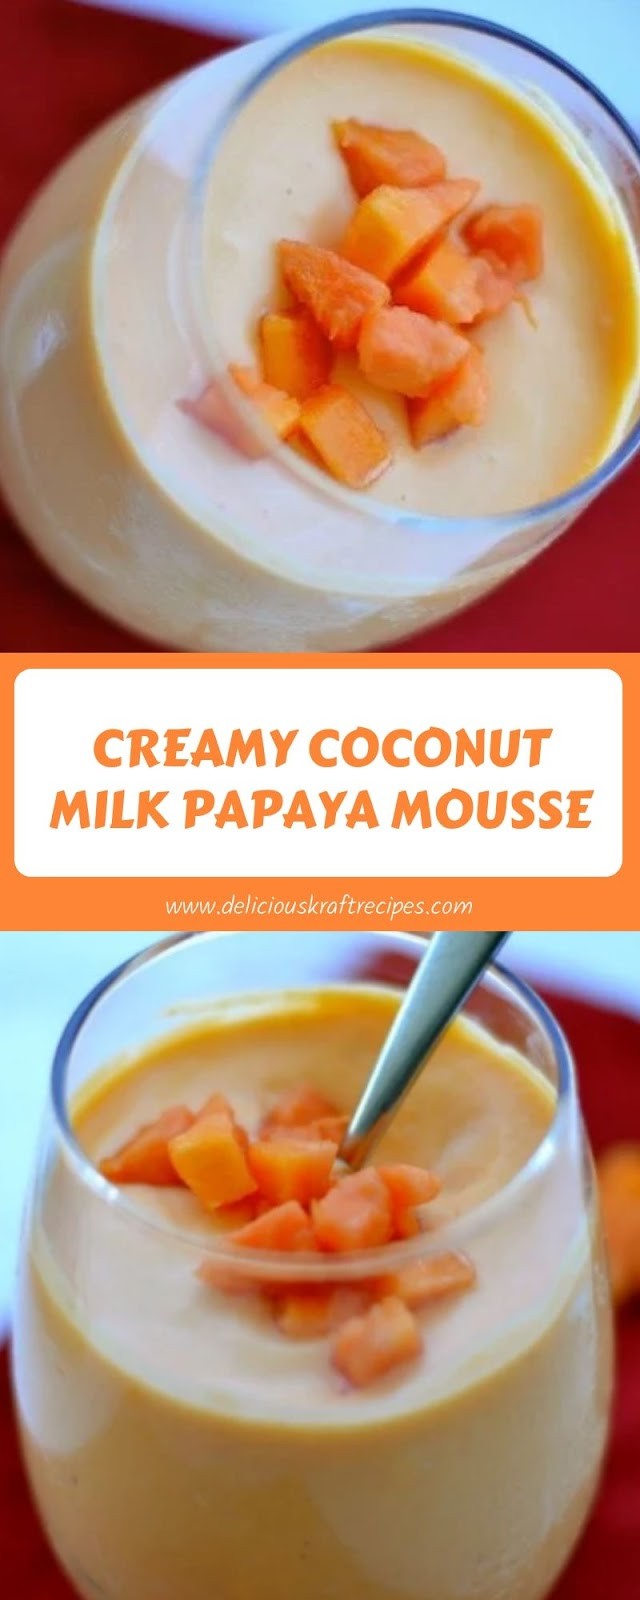 CREAMY COCONUT MILK PAPAYA MOUSSE